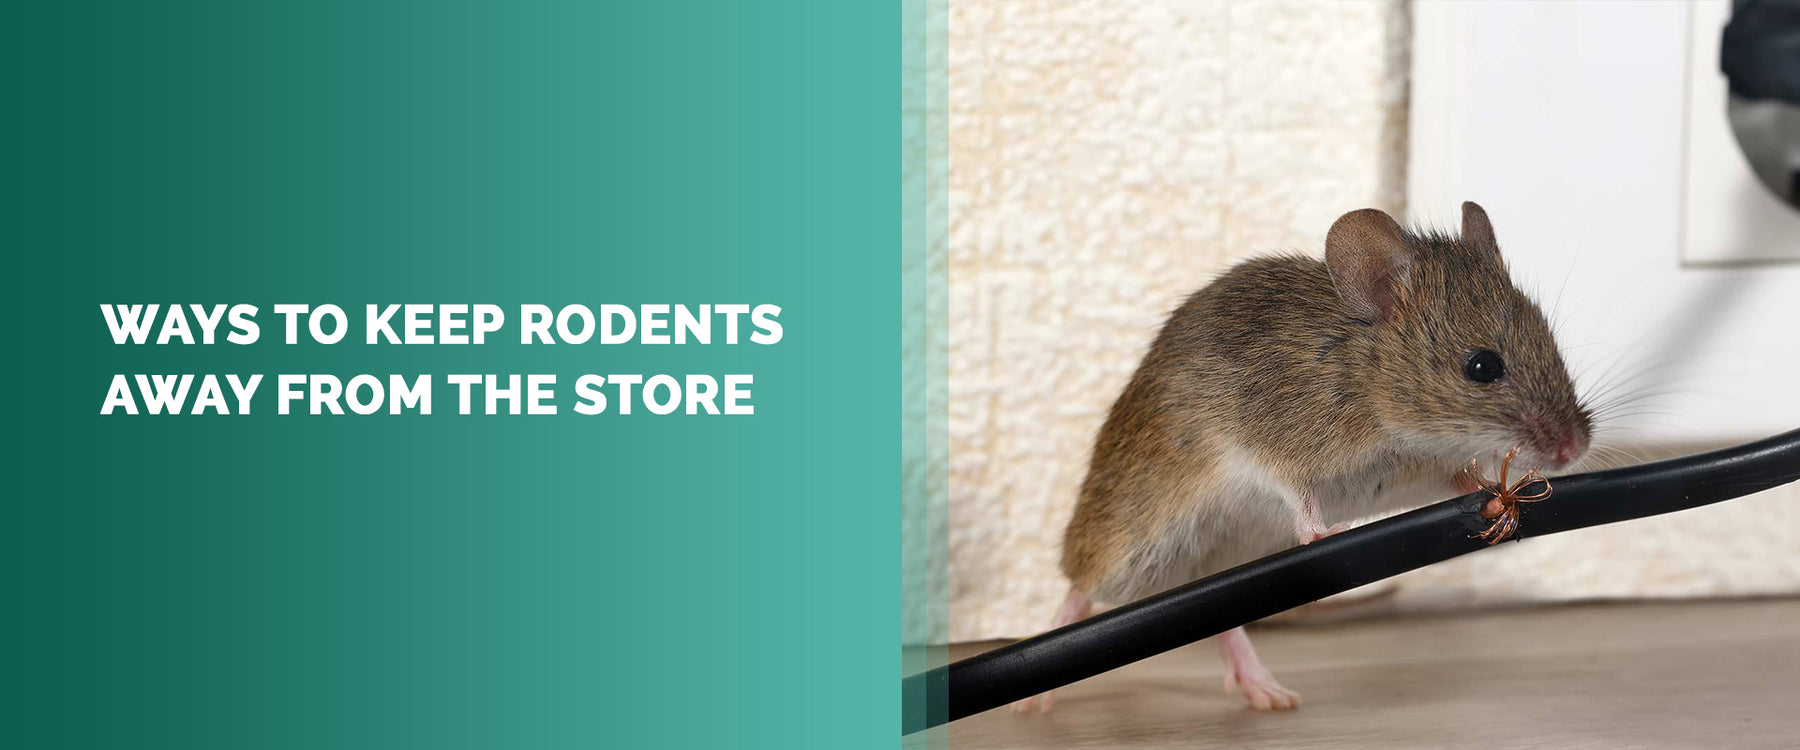 Ways To Keep Rodents Away From The Store